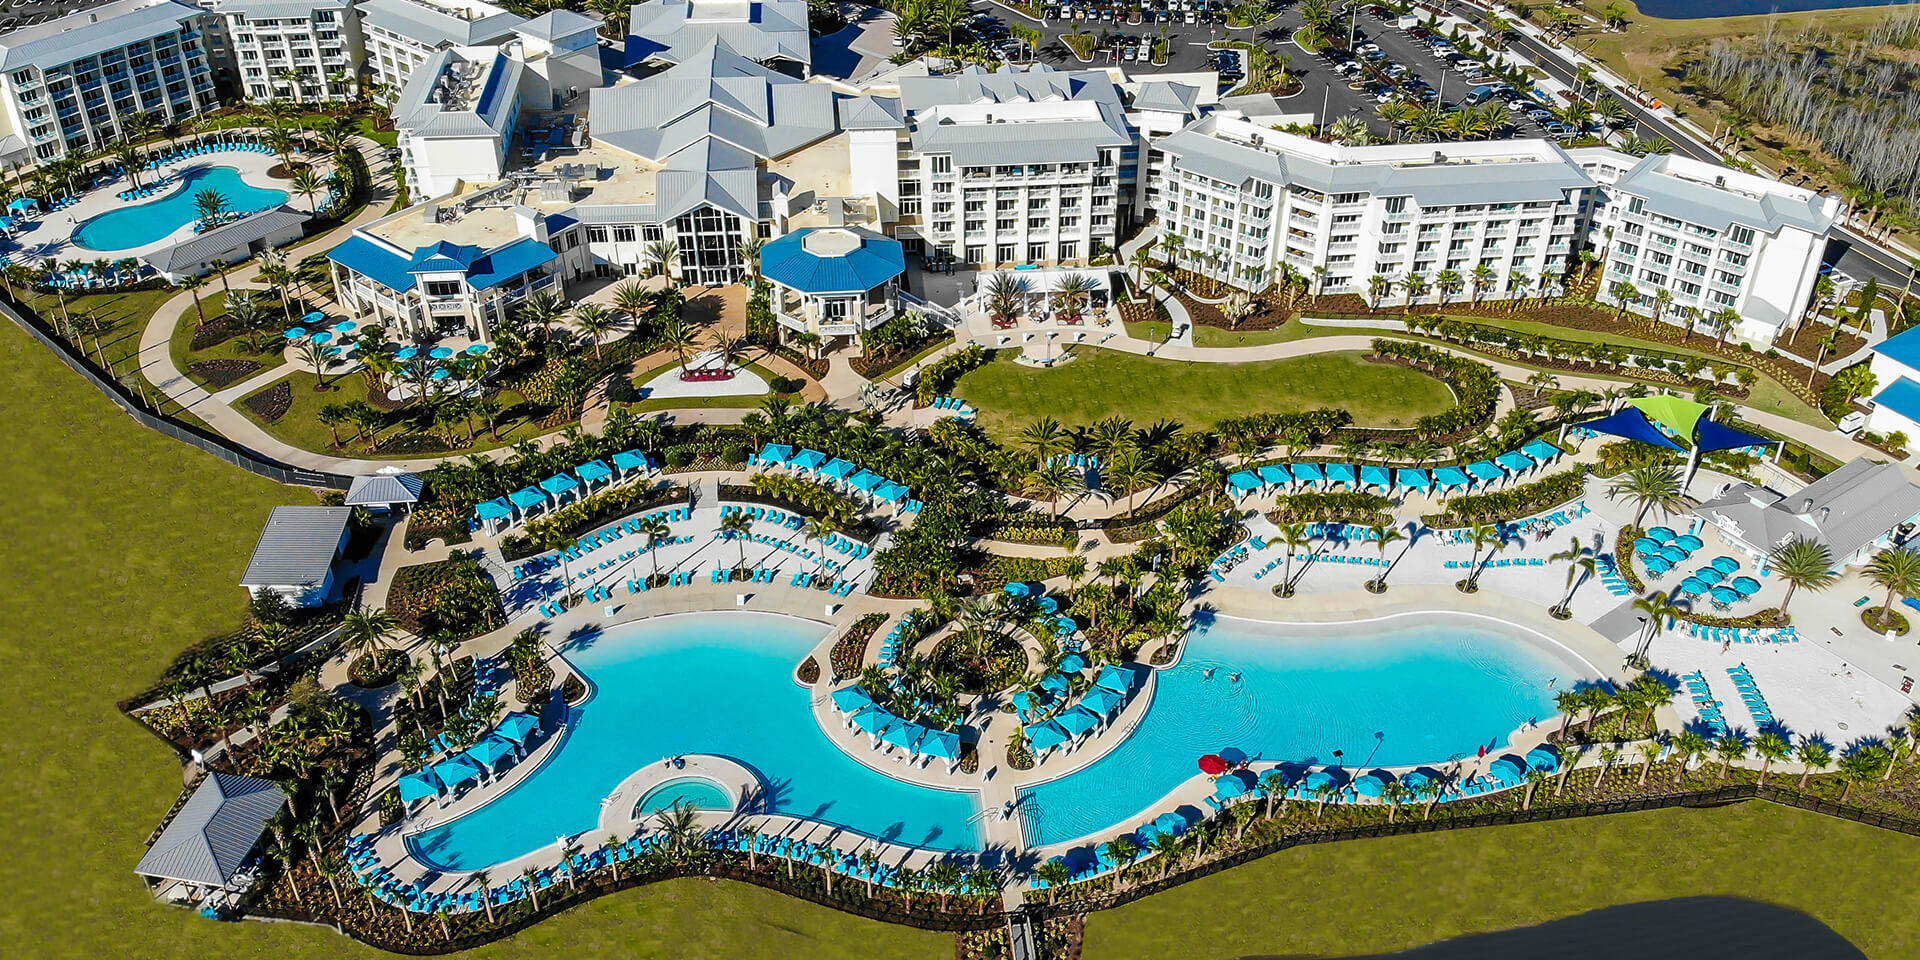 Chill Changes Everything Welcome to an island state of mind at the new island-inspired hotel and cottages at Margaritaville Resort Orlando! Special offers available.